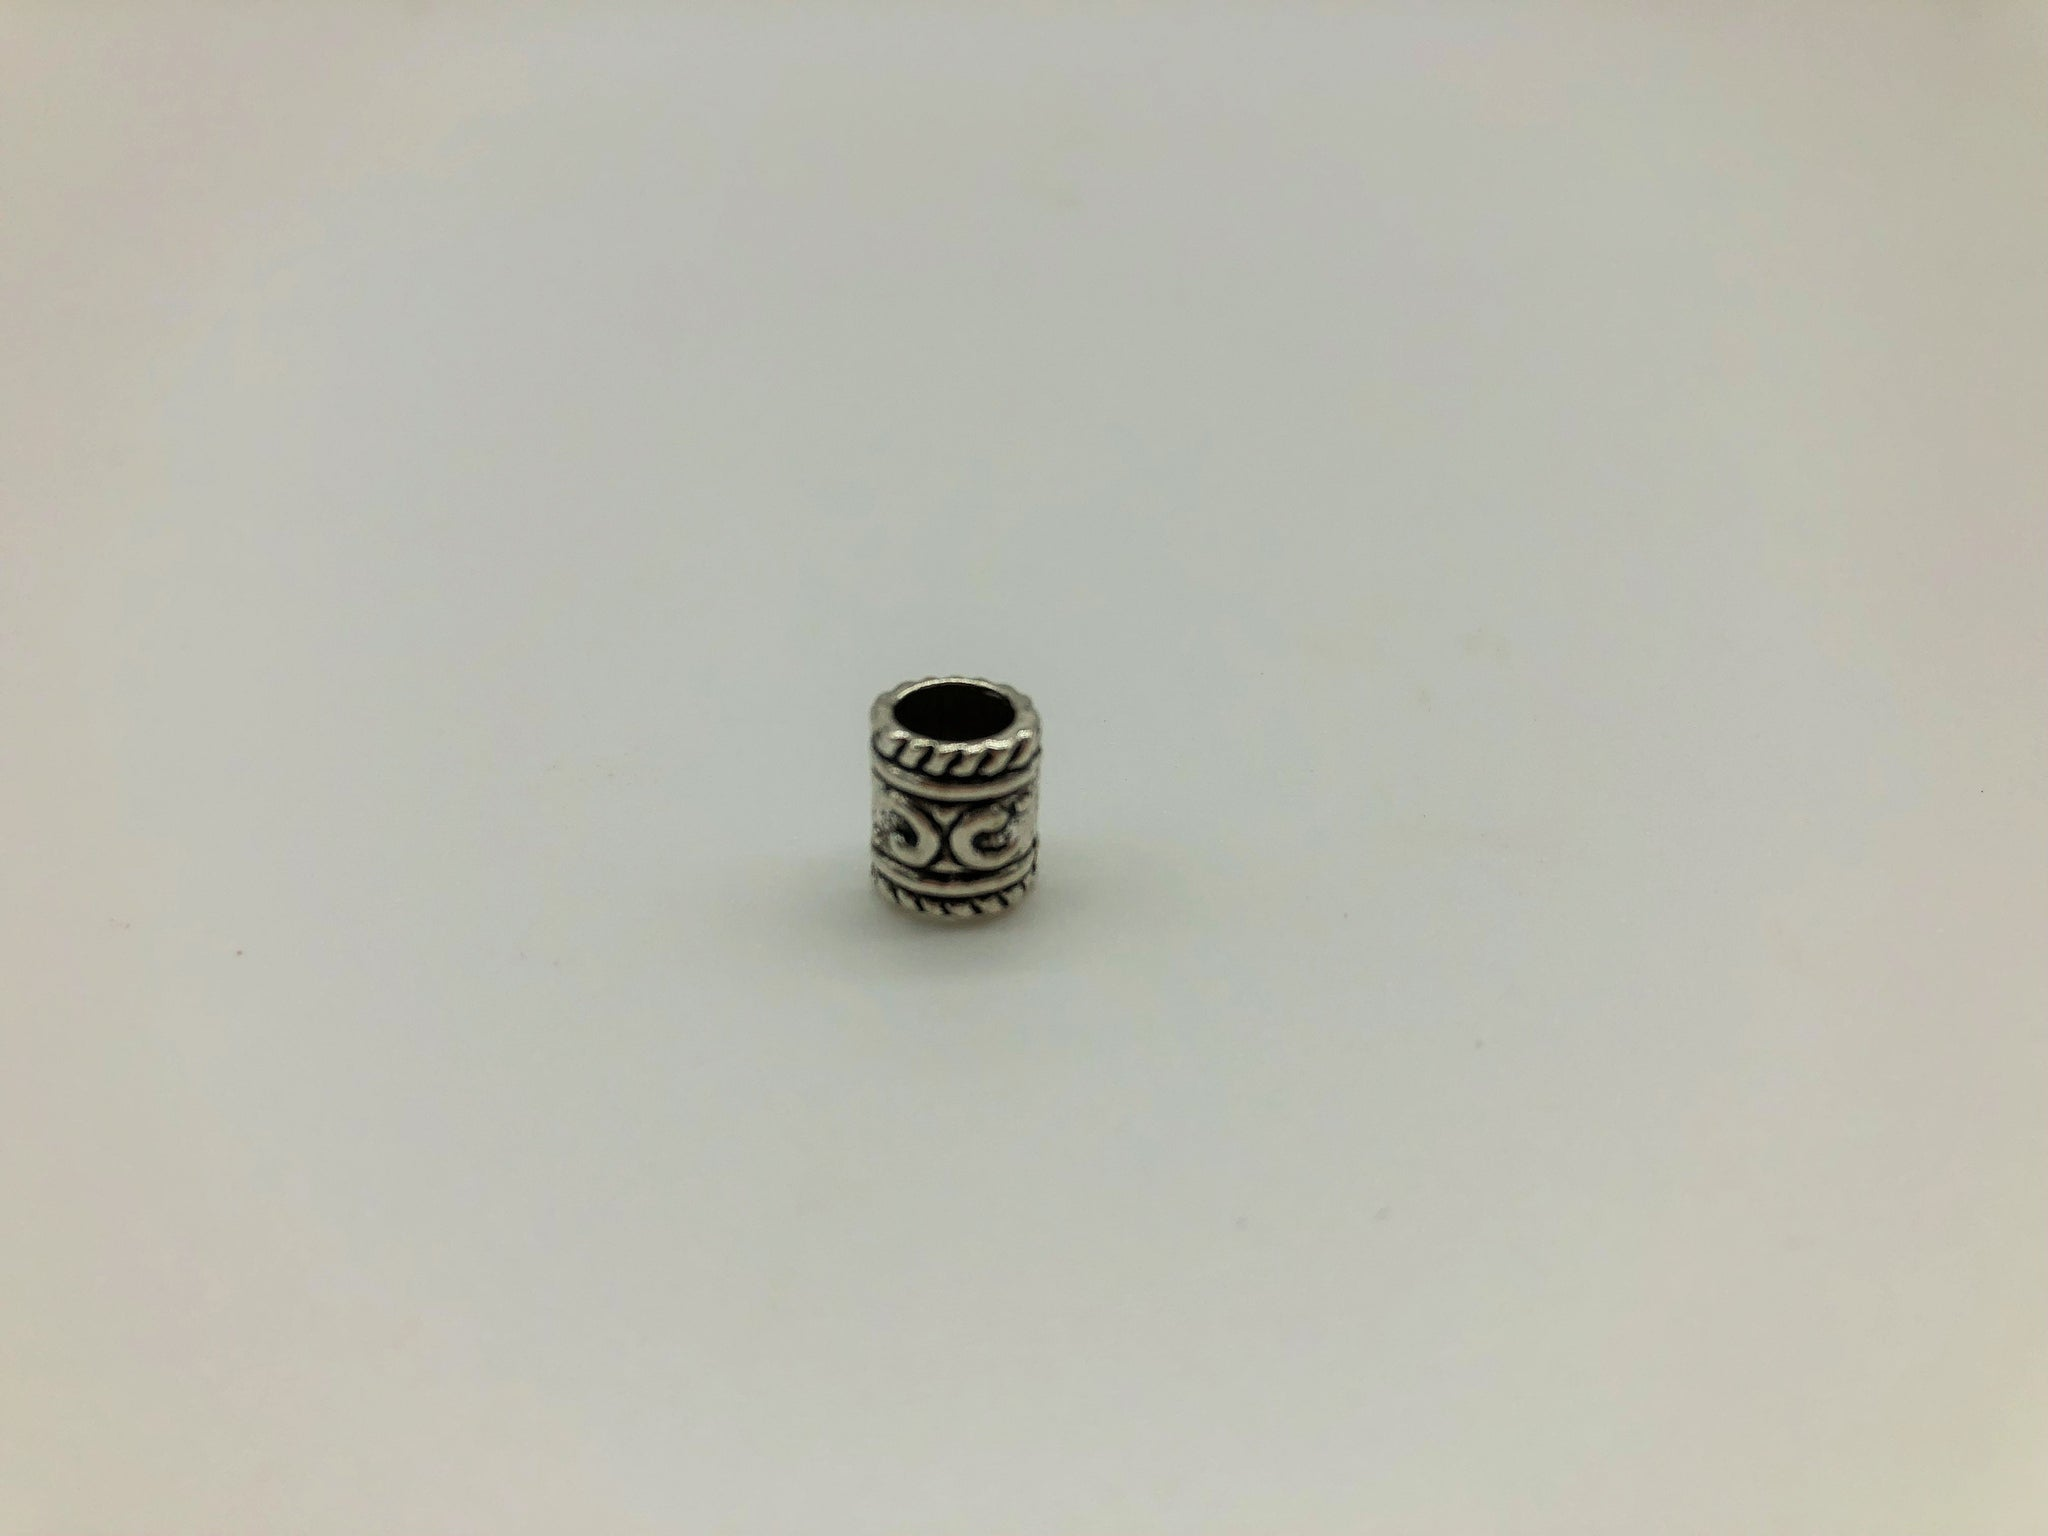 Small Hair cuff with no charm connector